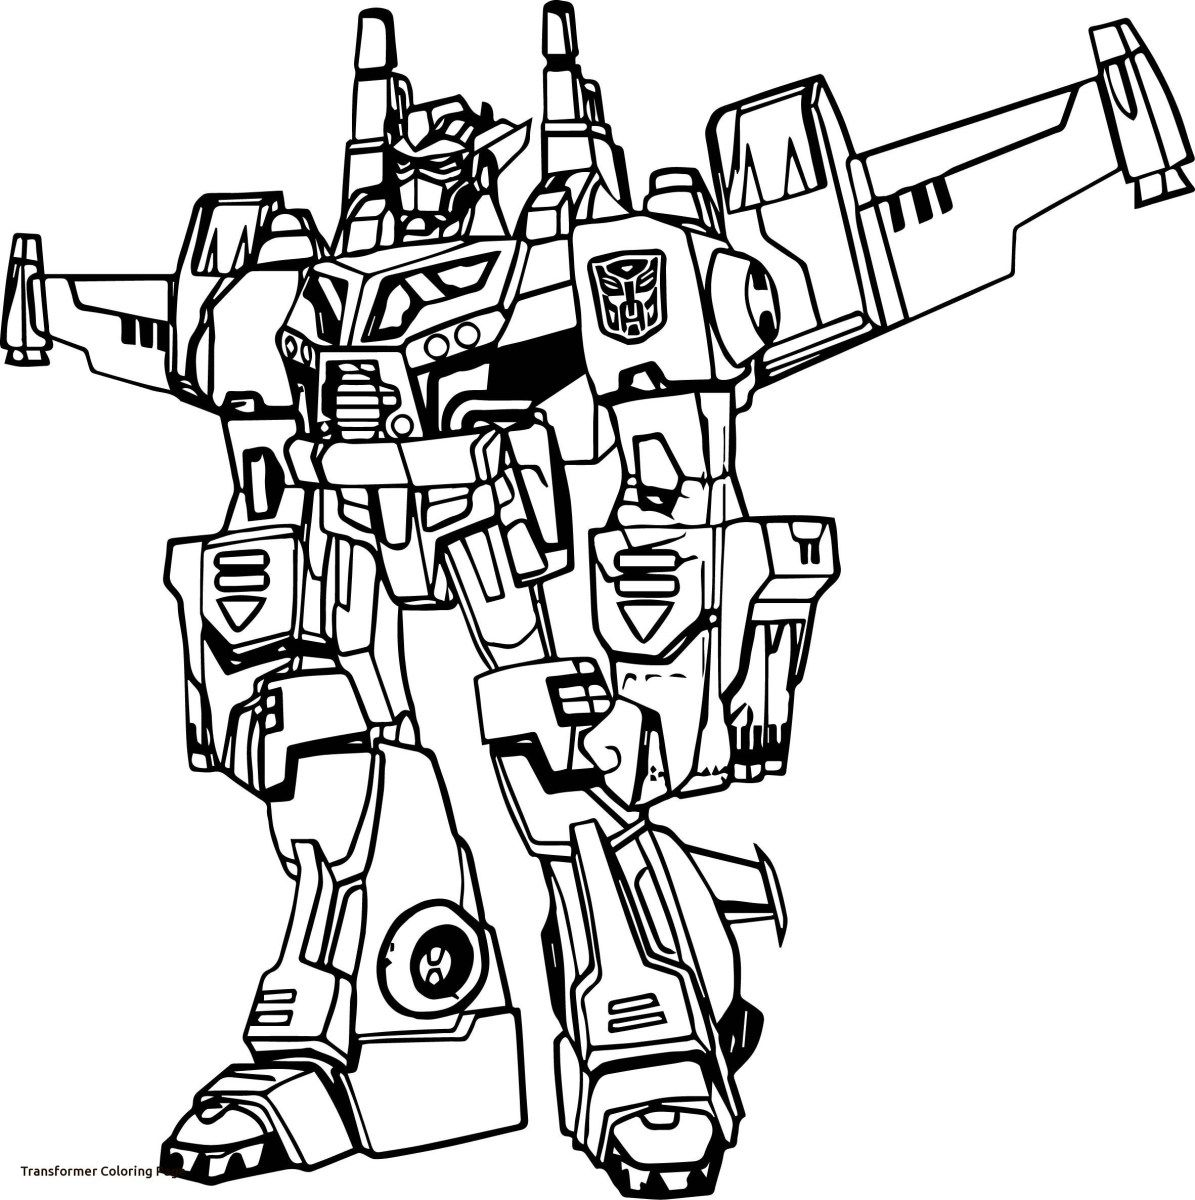 Transformer Coloring Pages A Ordable Transformers Coloring Pages Starscream Transformer With Entitlementtrap Com Transformers Coloring Pages Bee Coloring Pages Coloring Pages For Boys